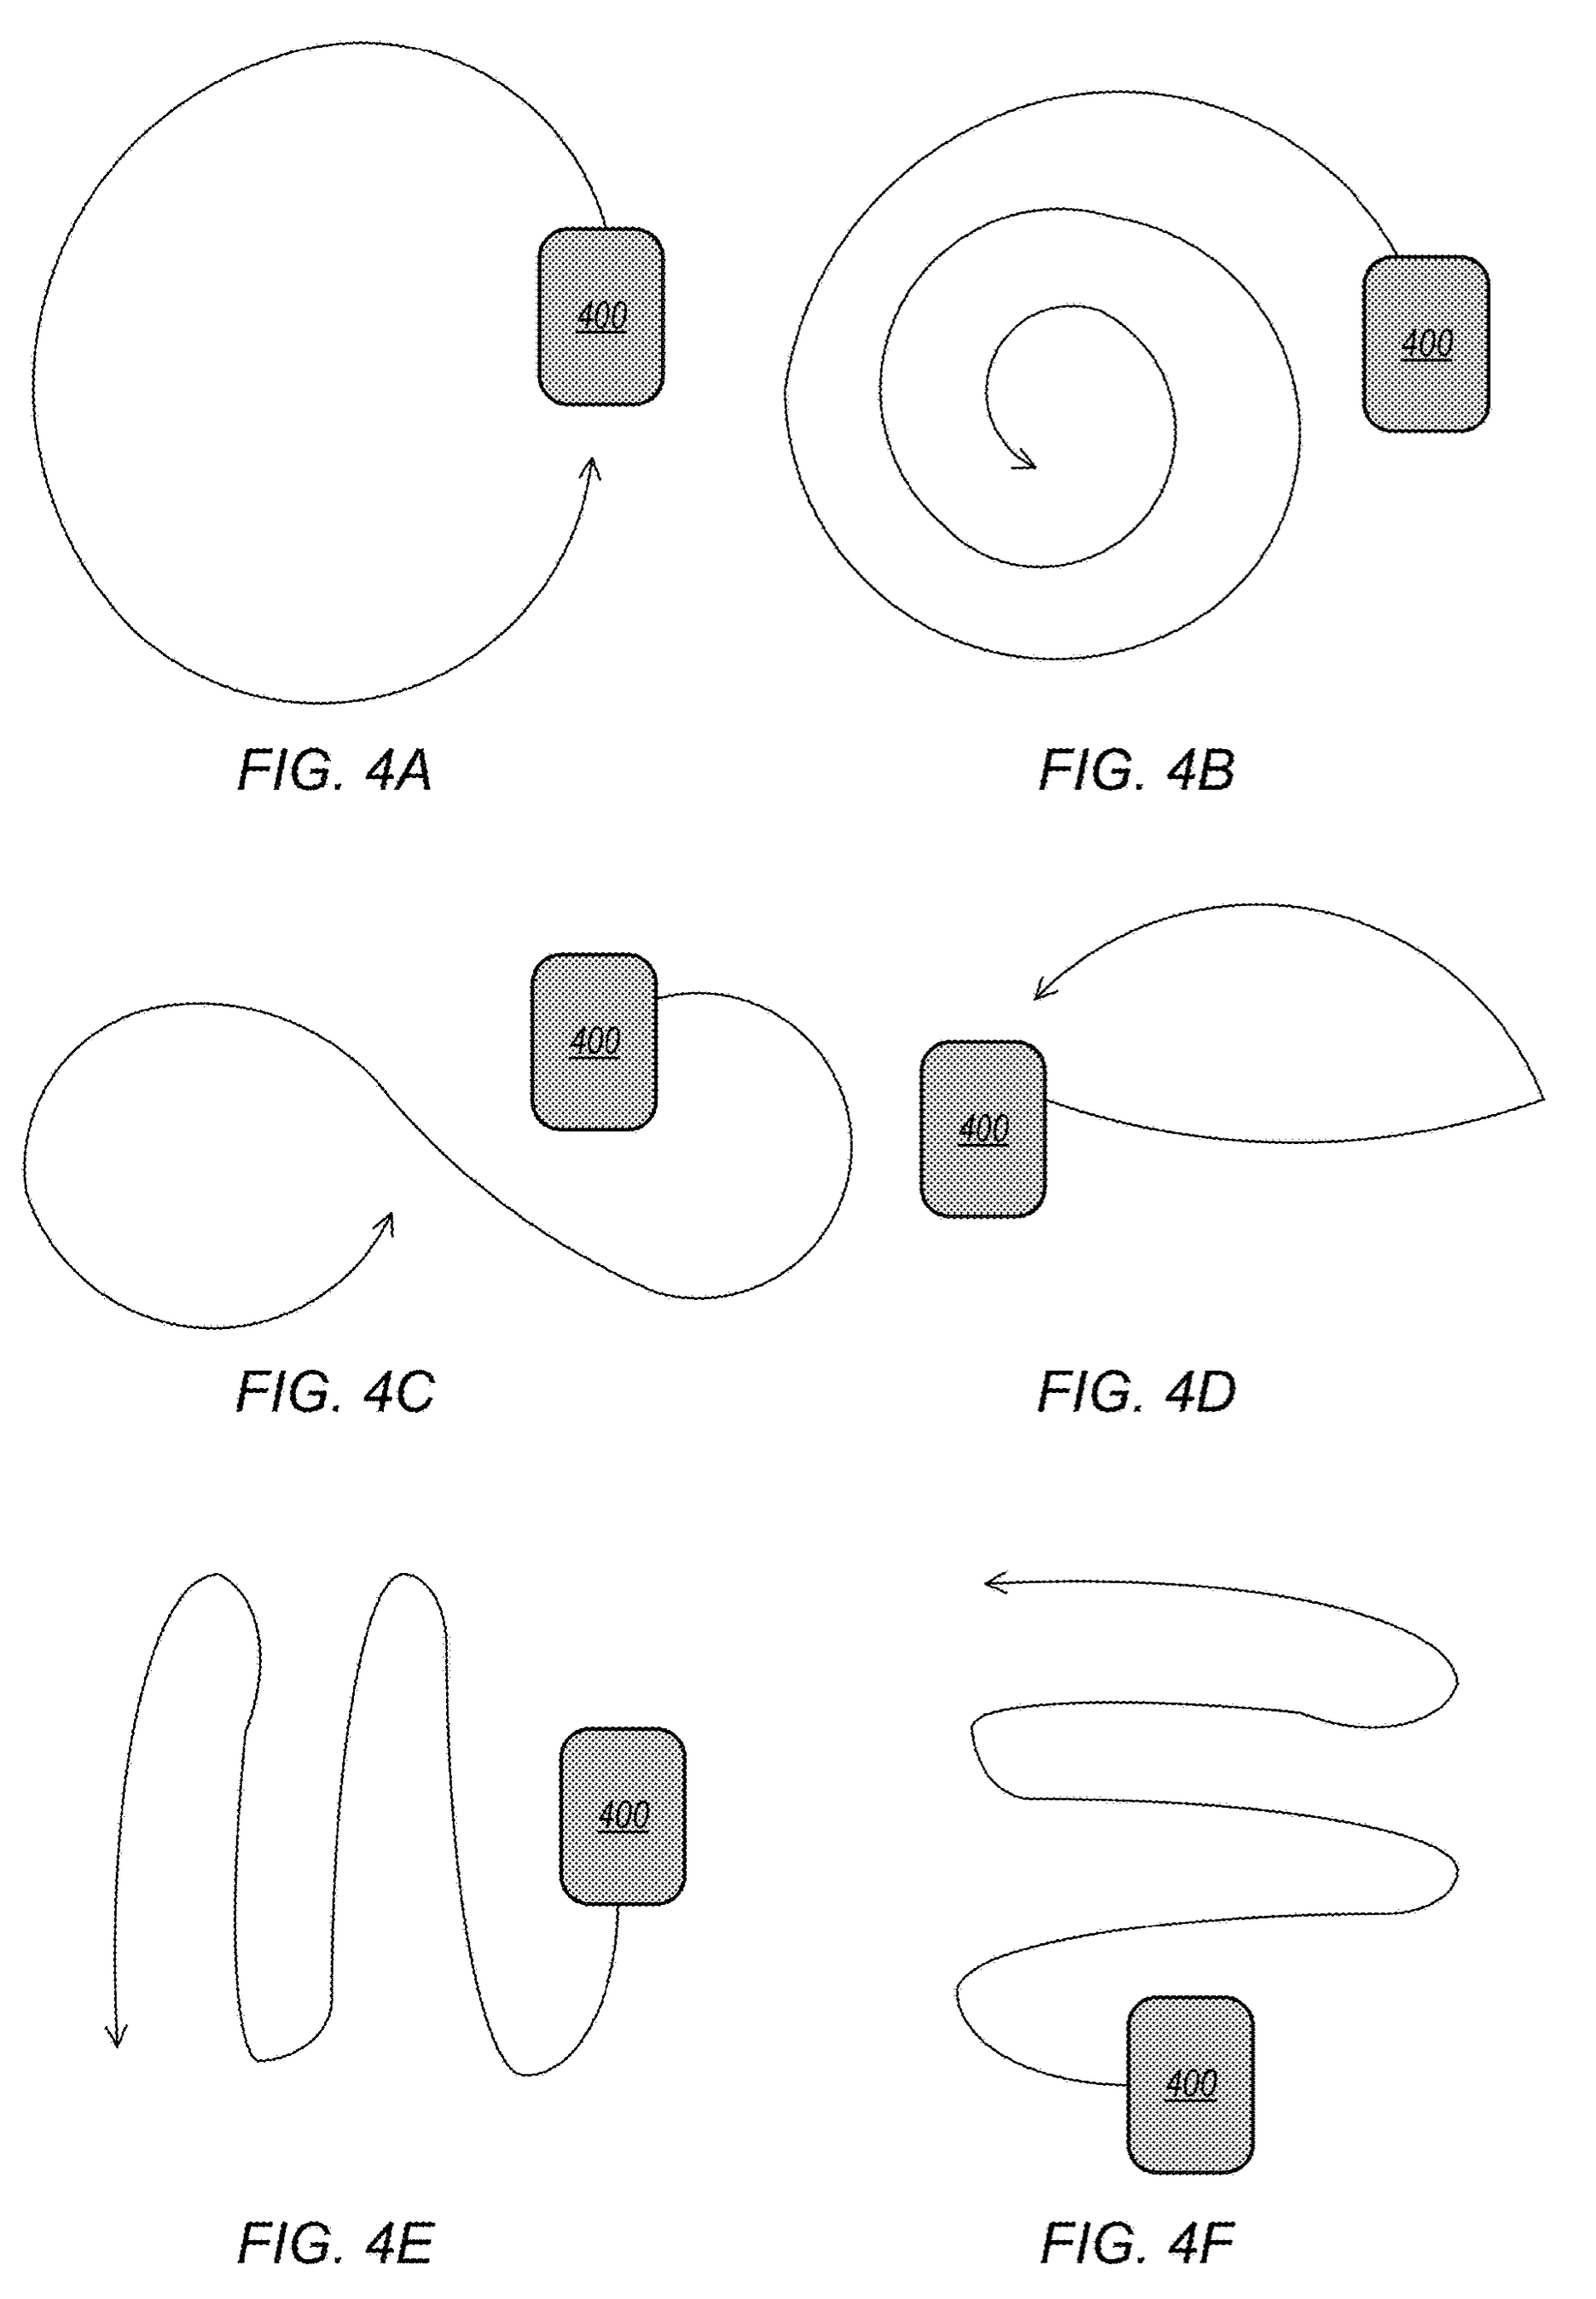 light field iPhone illustration showing supported camera gestures